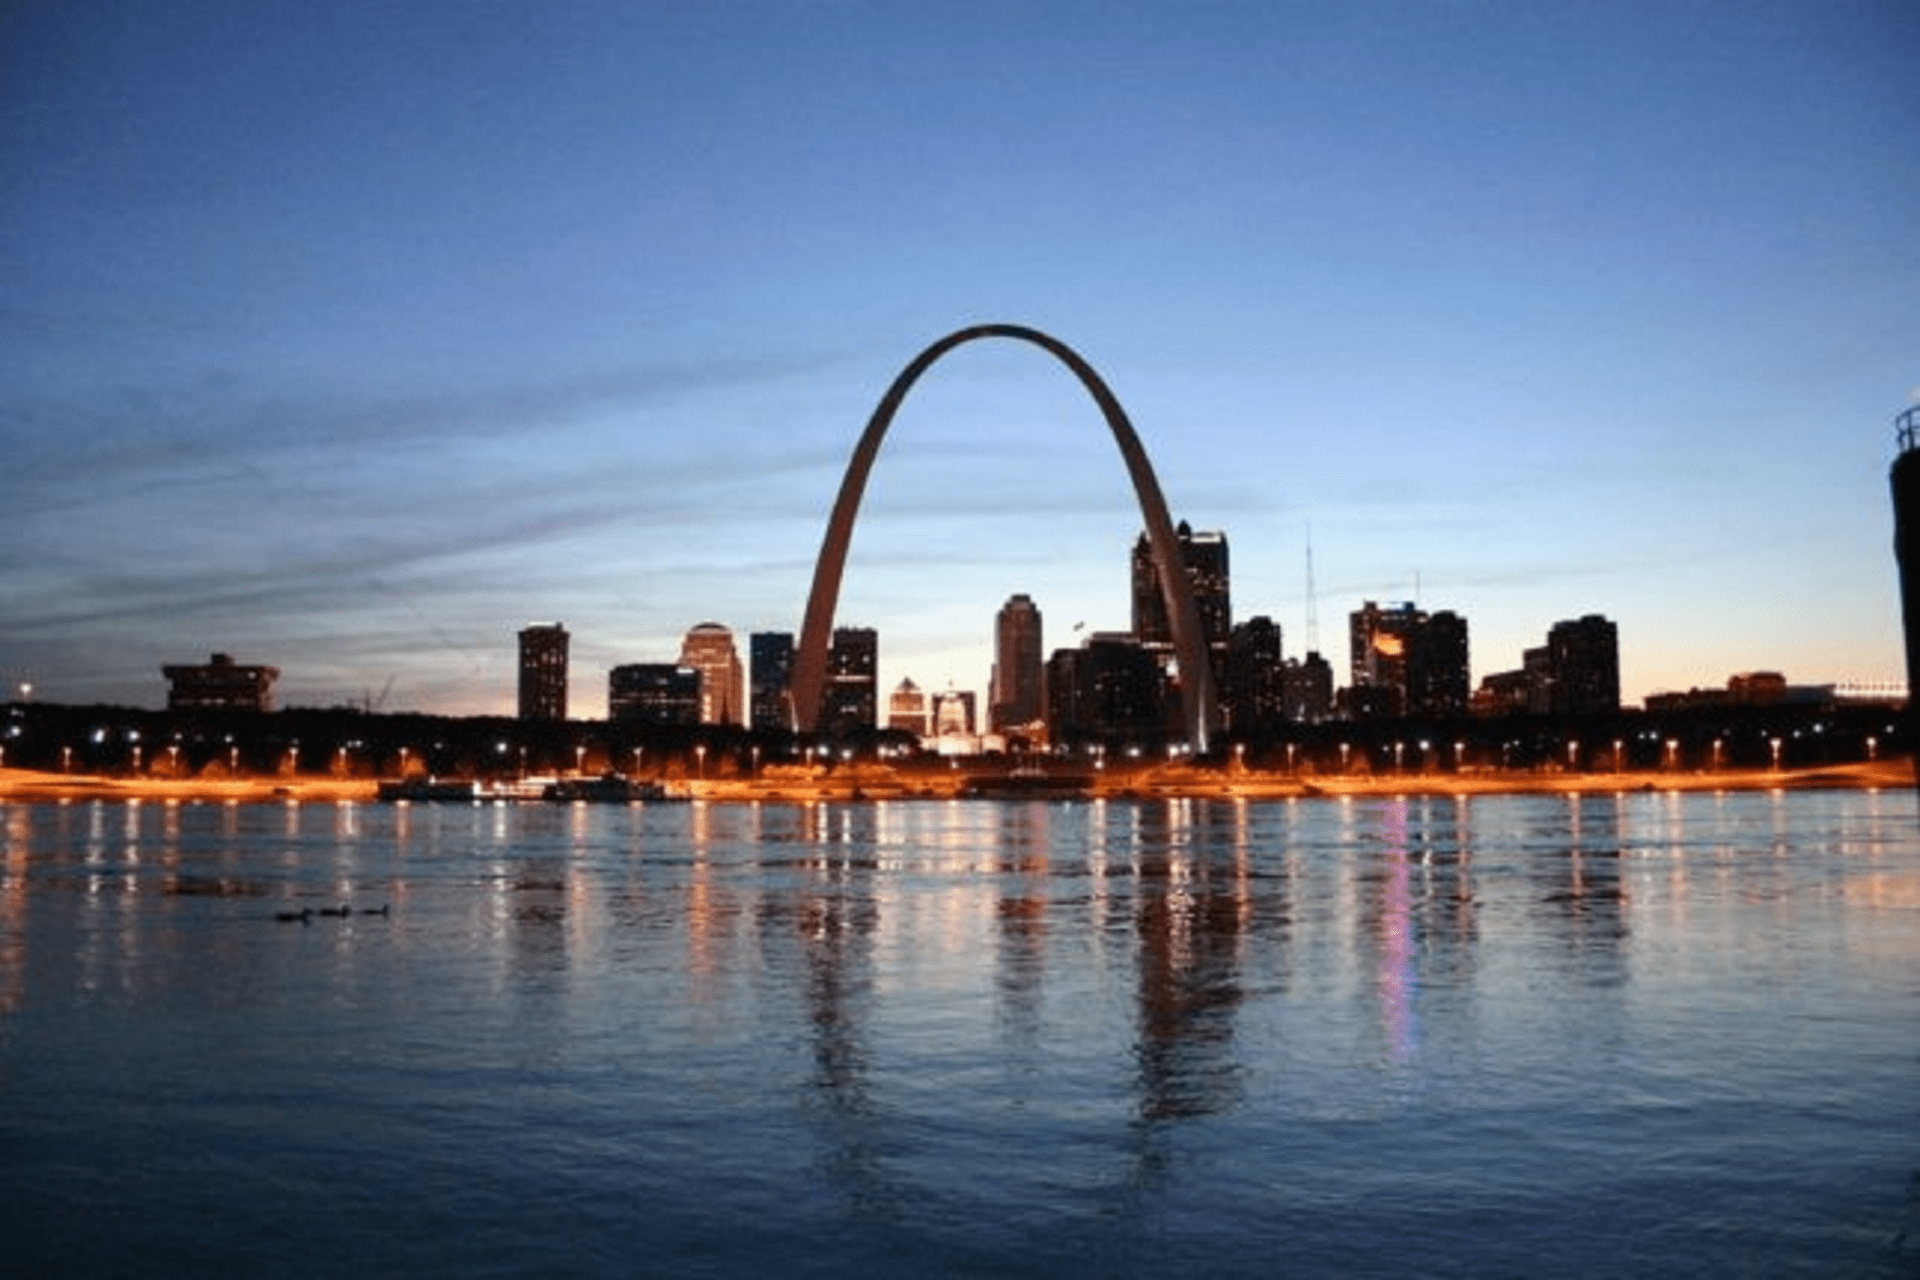 Evening skyline photo of downtown St. Louis